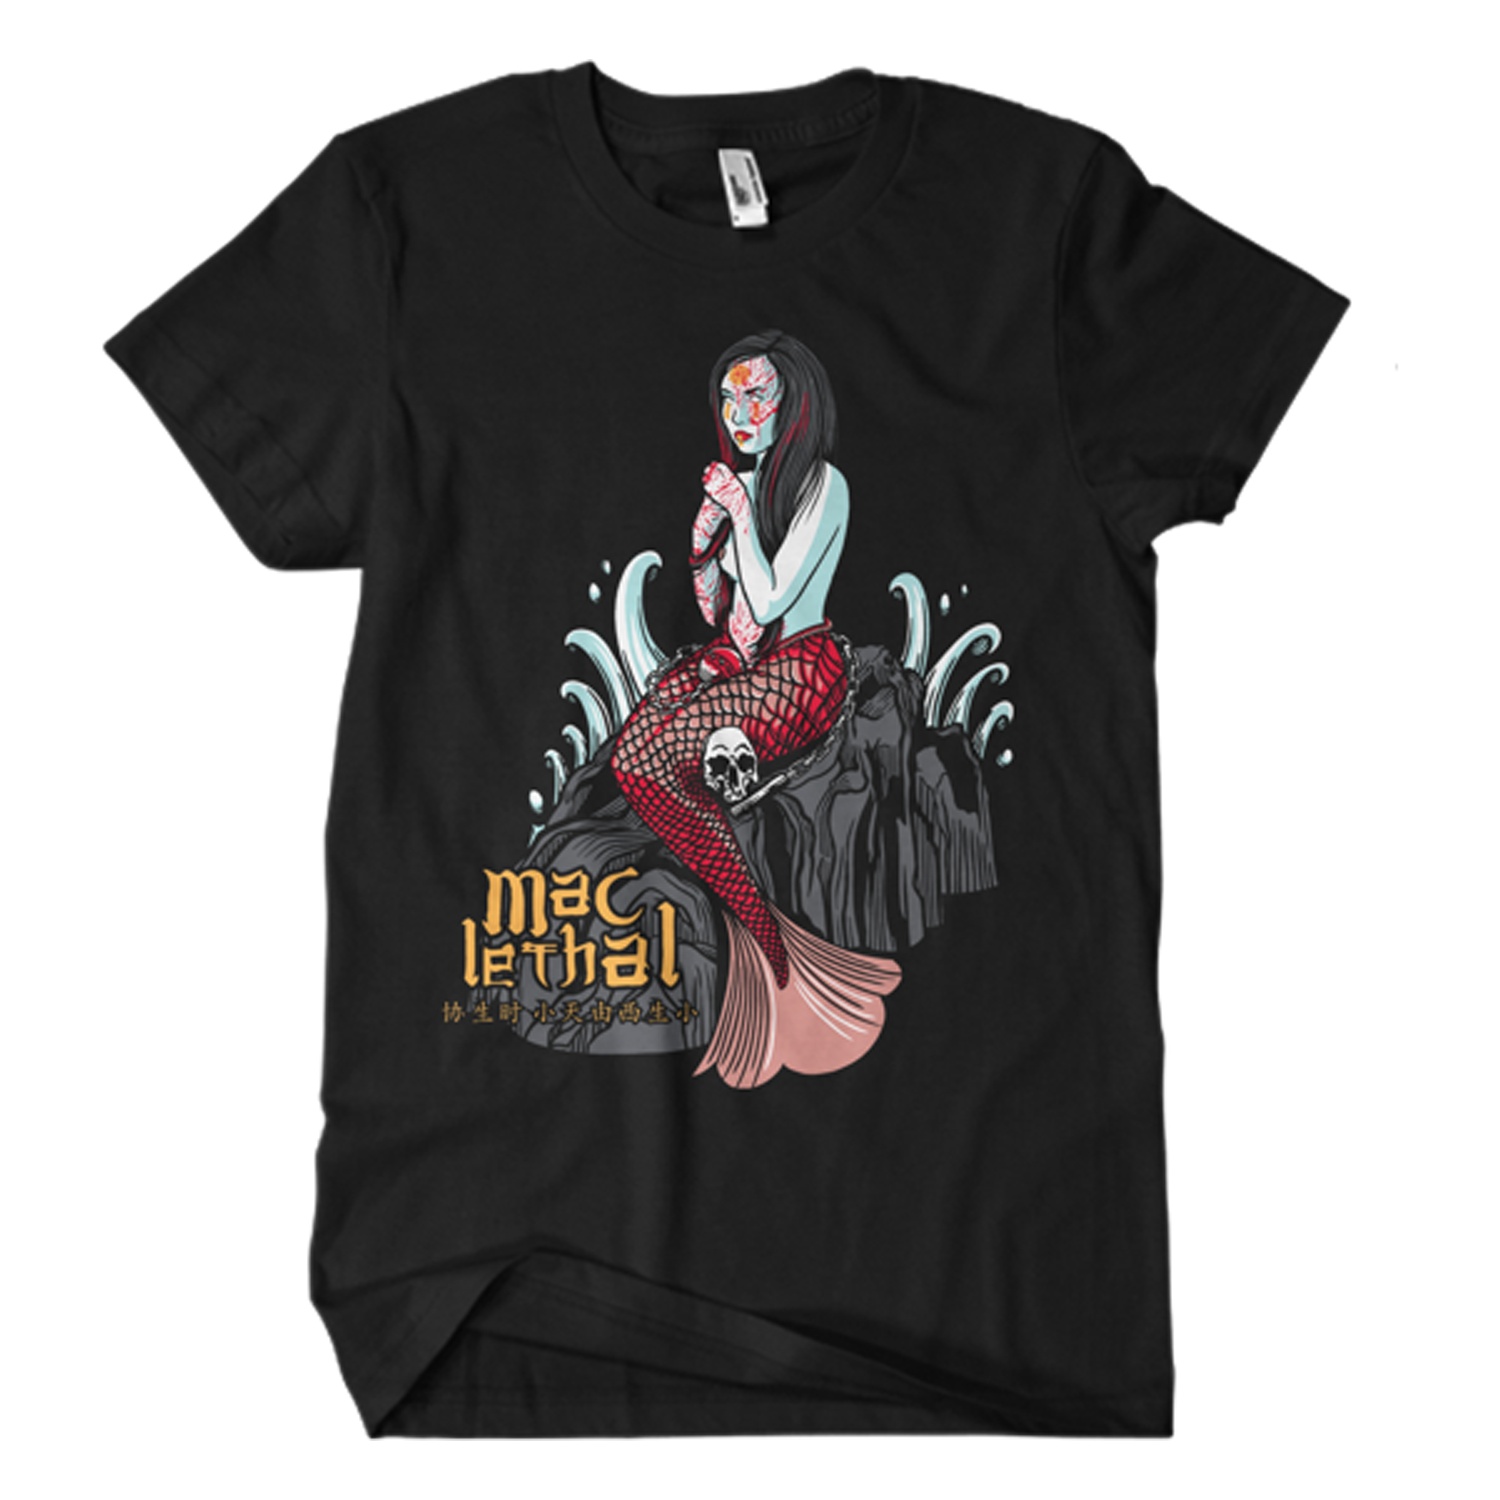 Mac Lethal | Mermaid T-Shirt